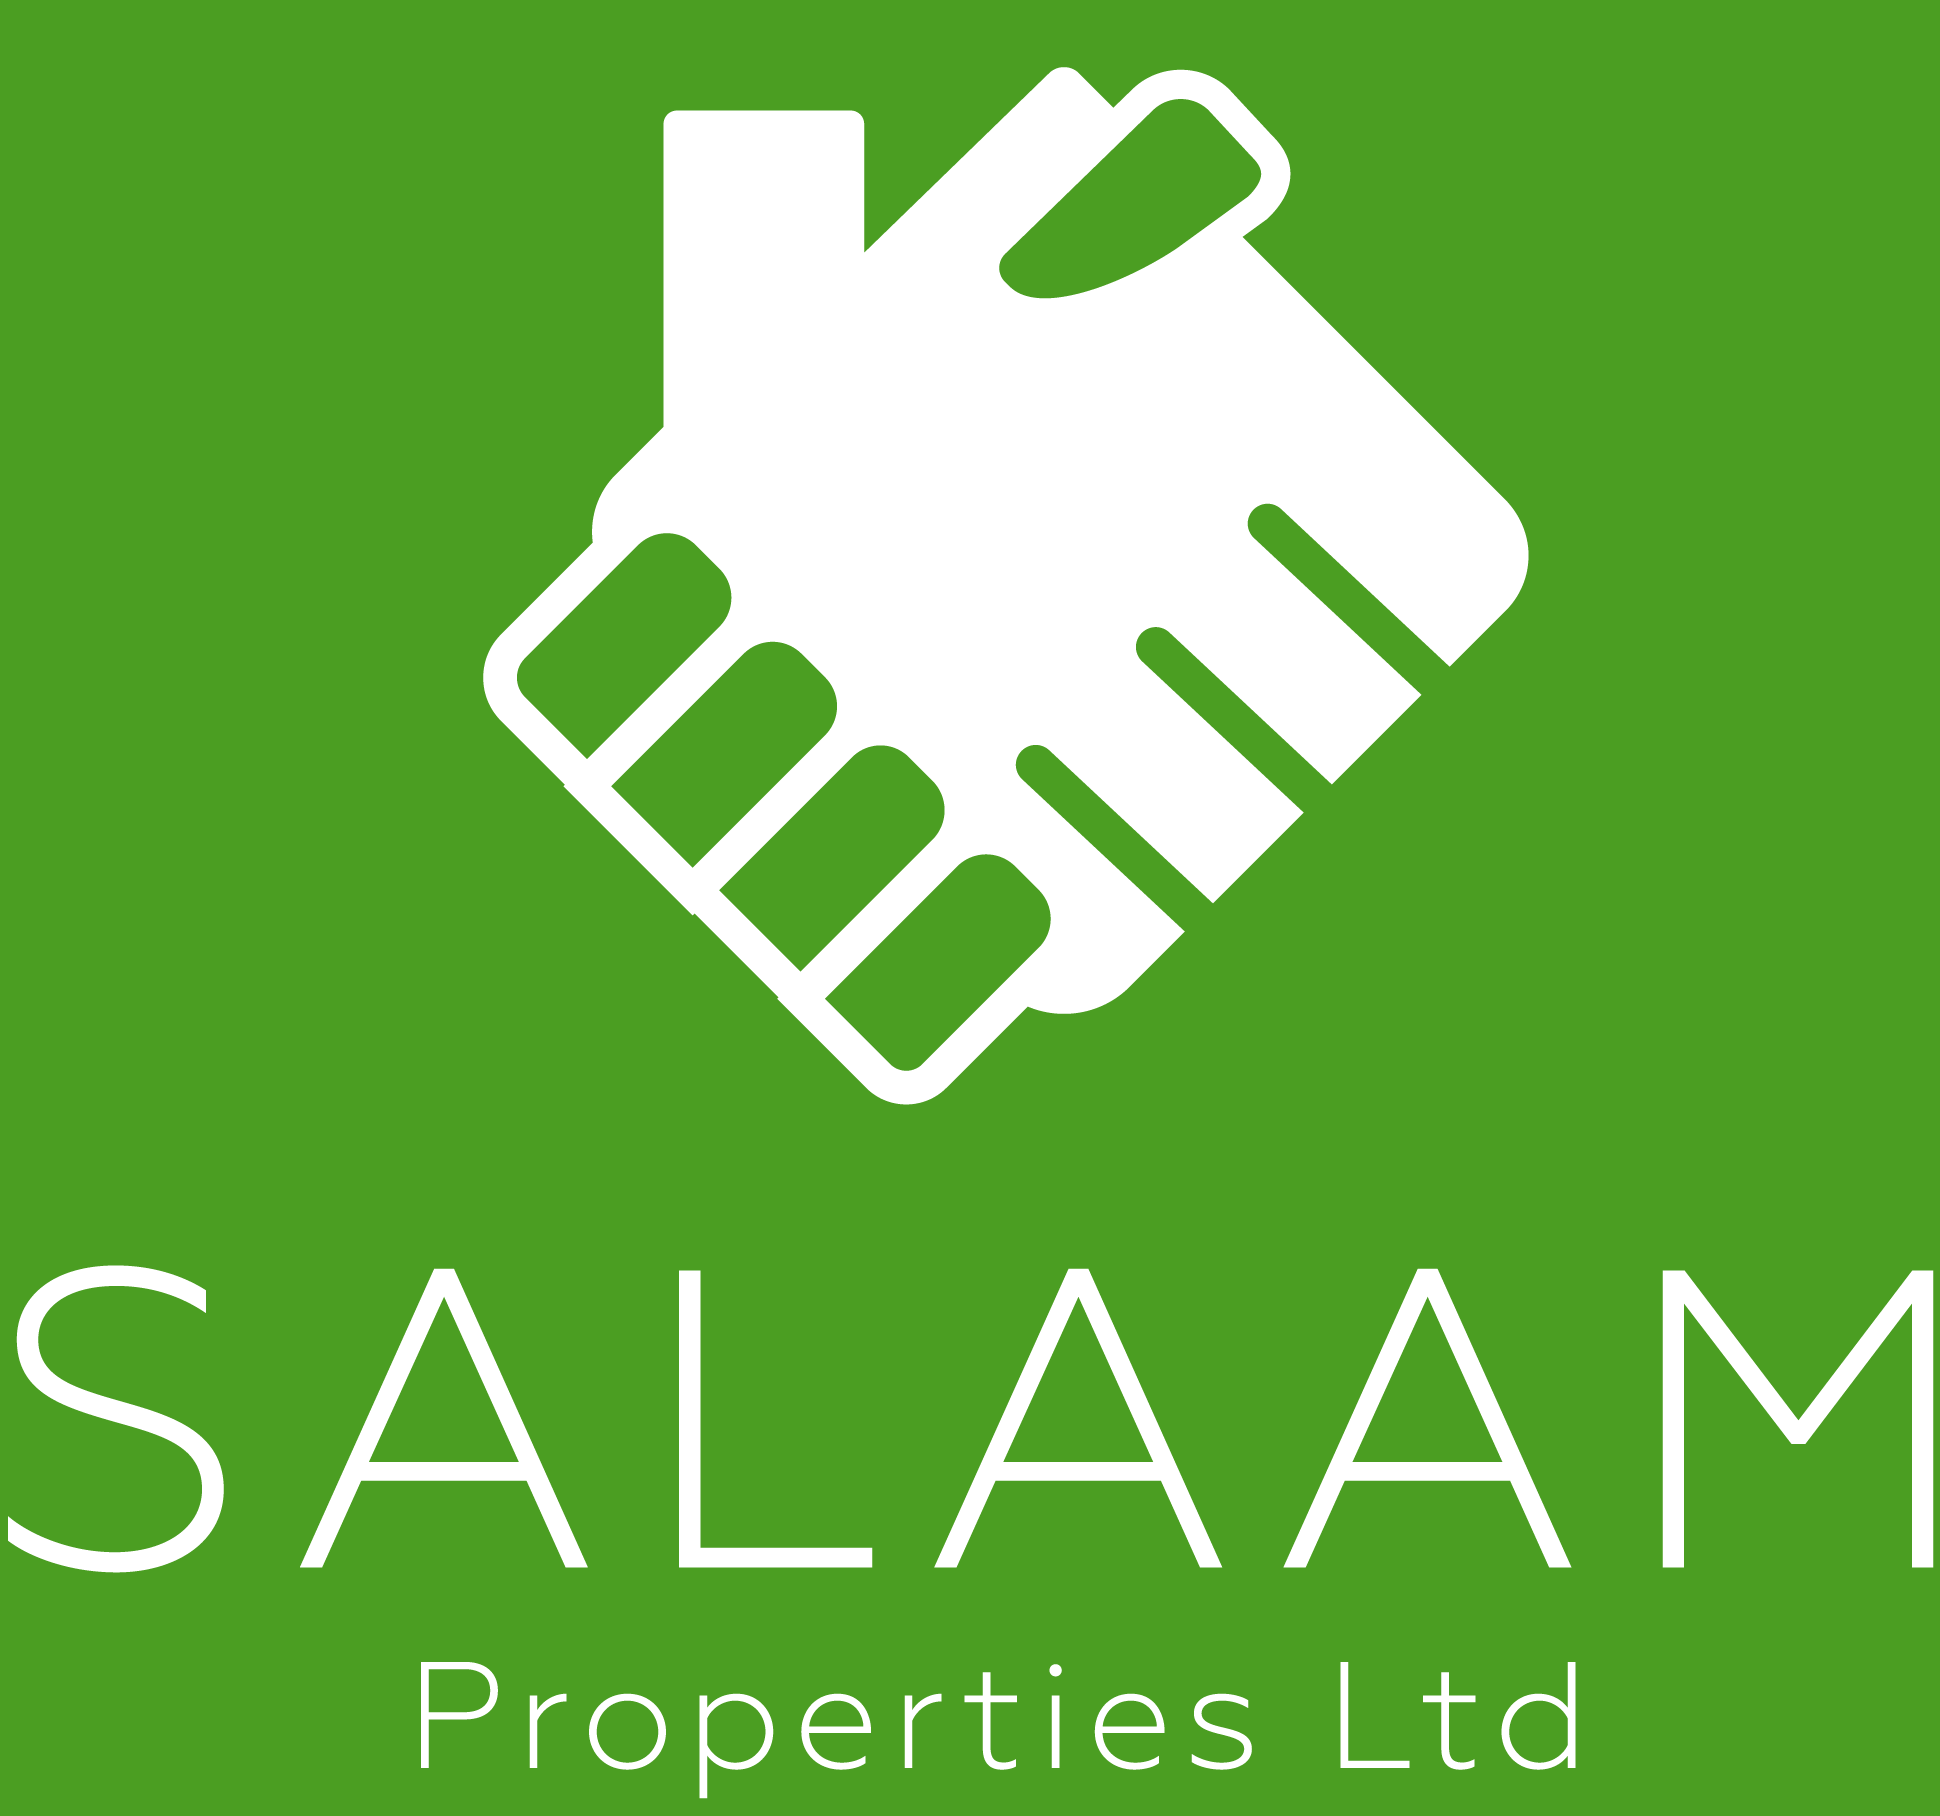 Salaam Properties Ltd Logo